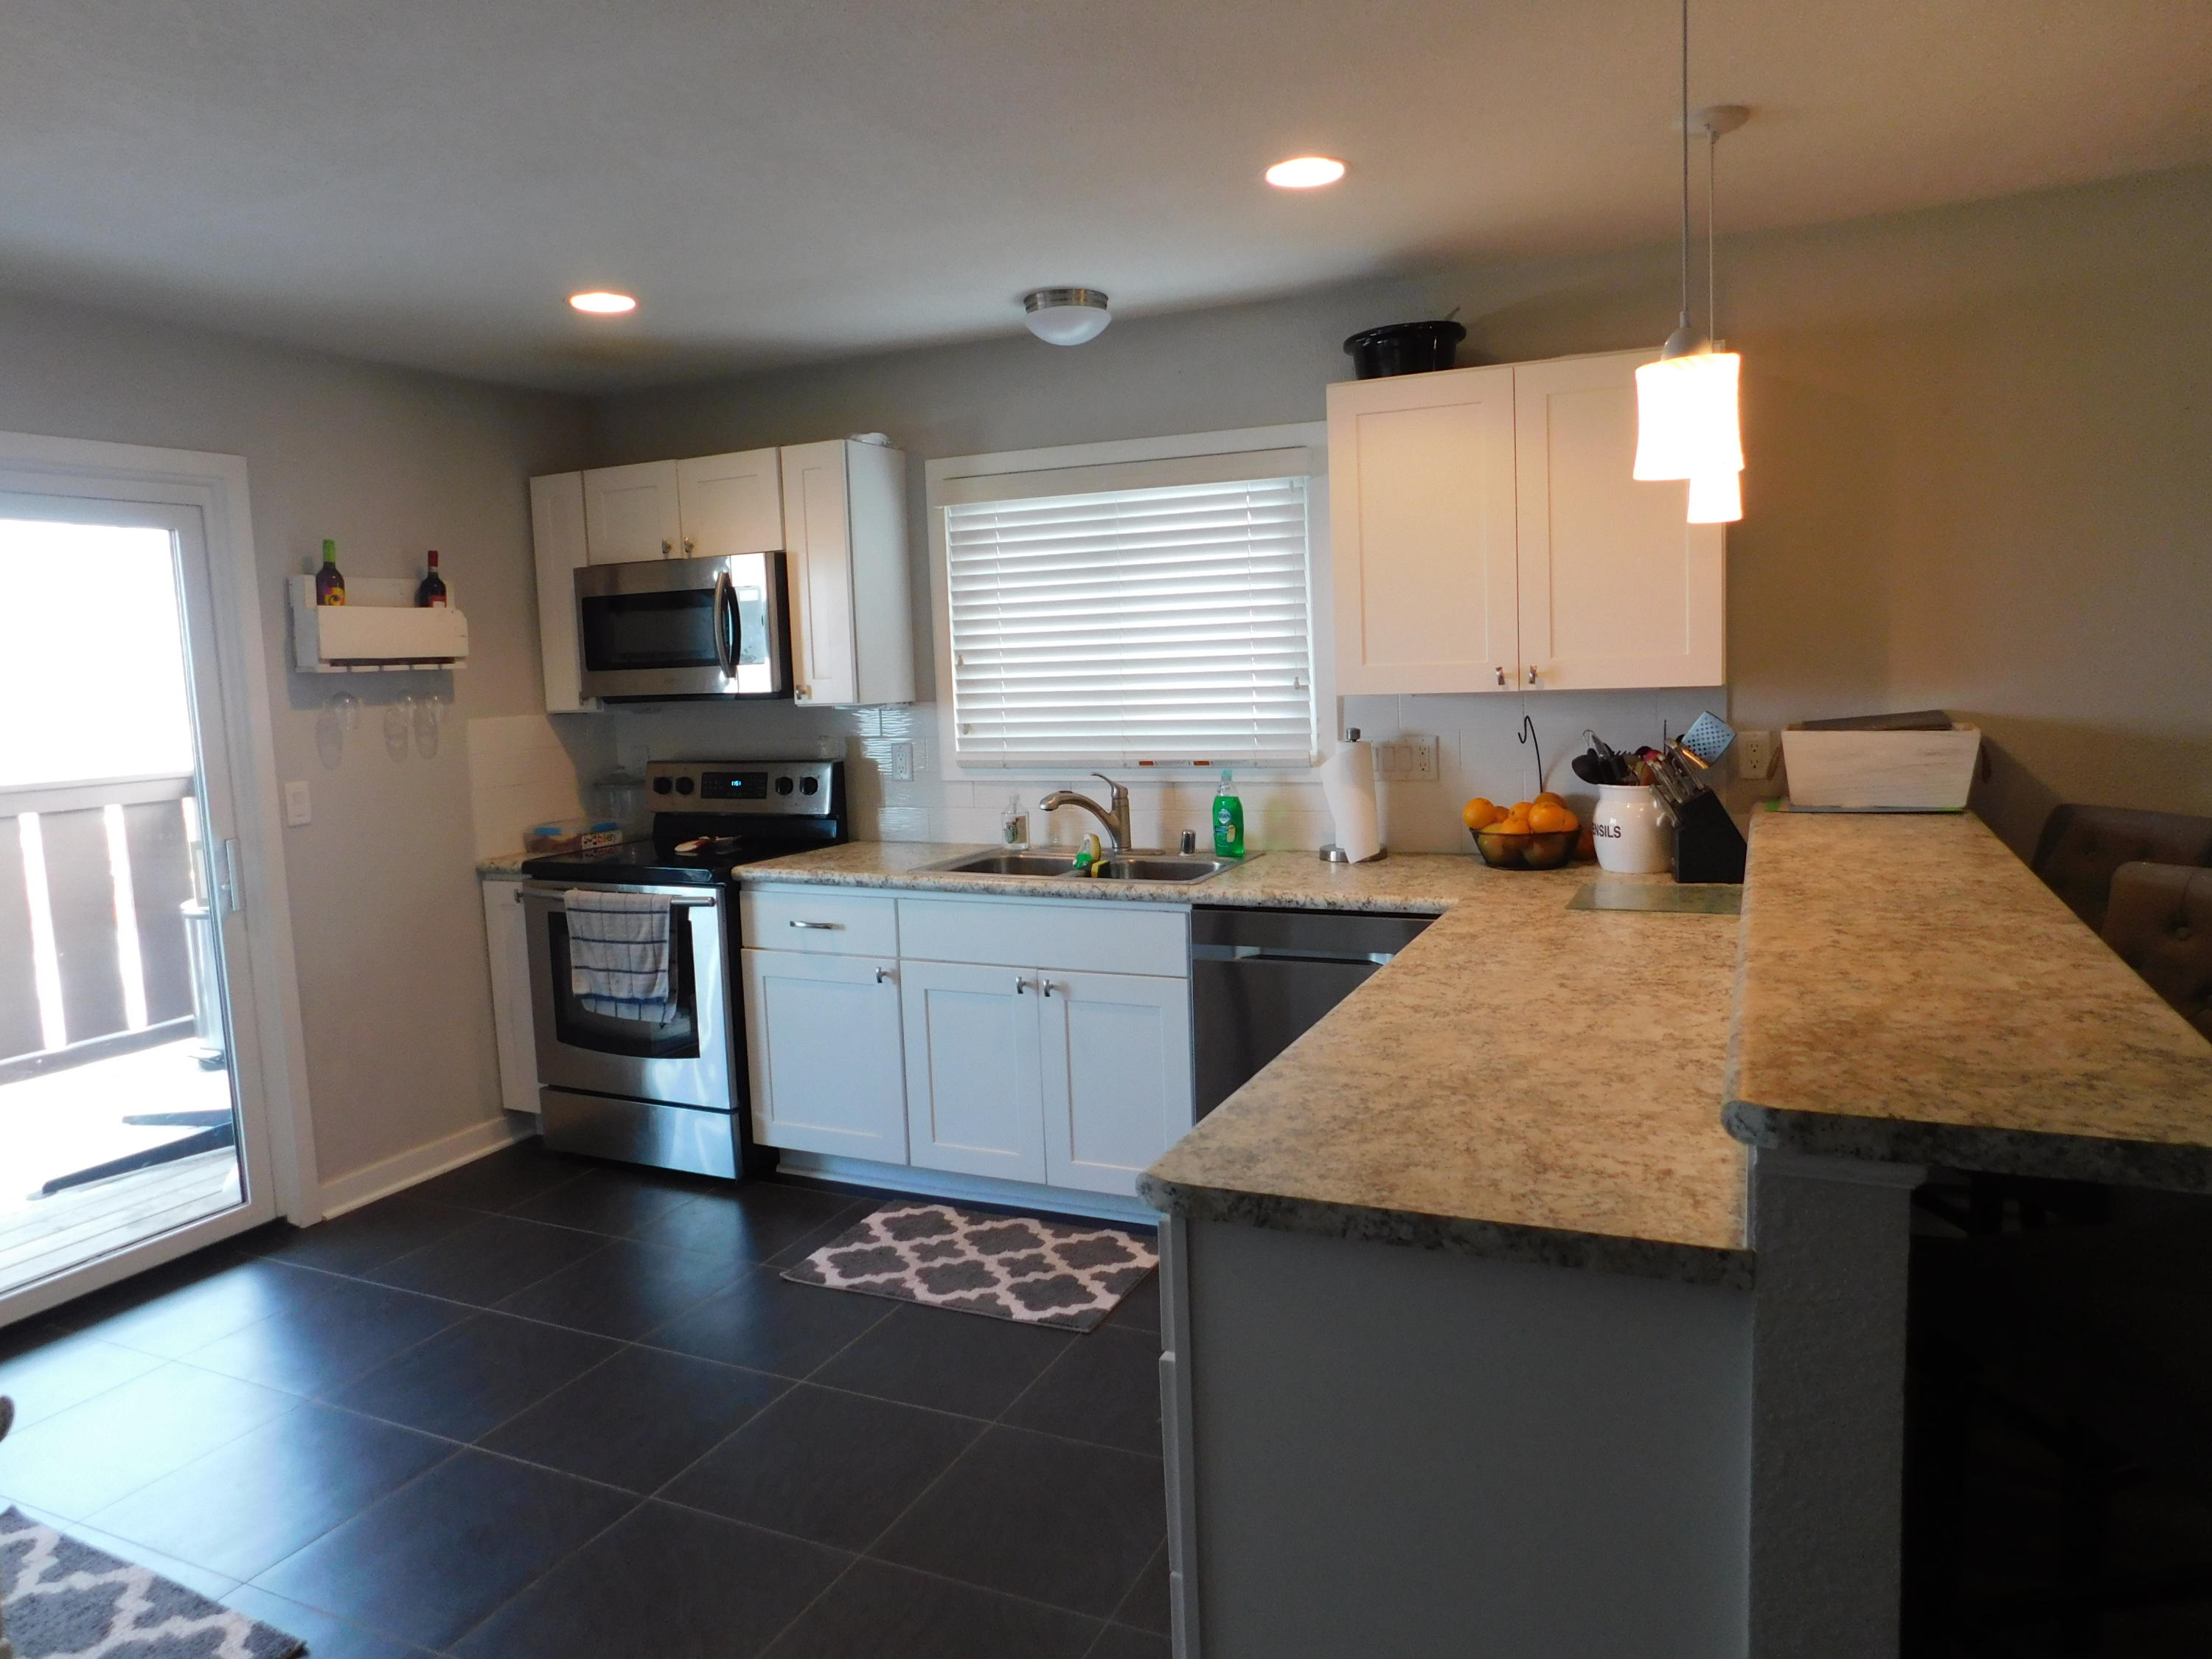 1334 Greenhedge Rd, Pewaukee, Wisconsin 53072, 2 Bedrooms Bedrooms, 5 Rooms Rooms,1 BathroomBathrooms,Condominiums,For Sale,Greenhedge Rd,2,1617981